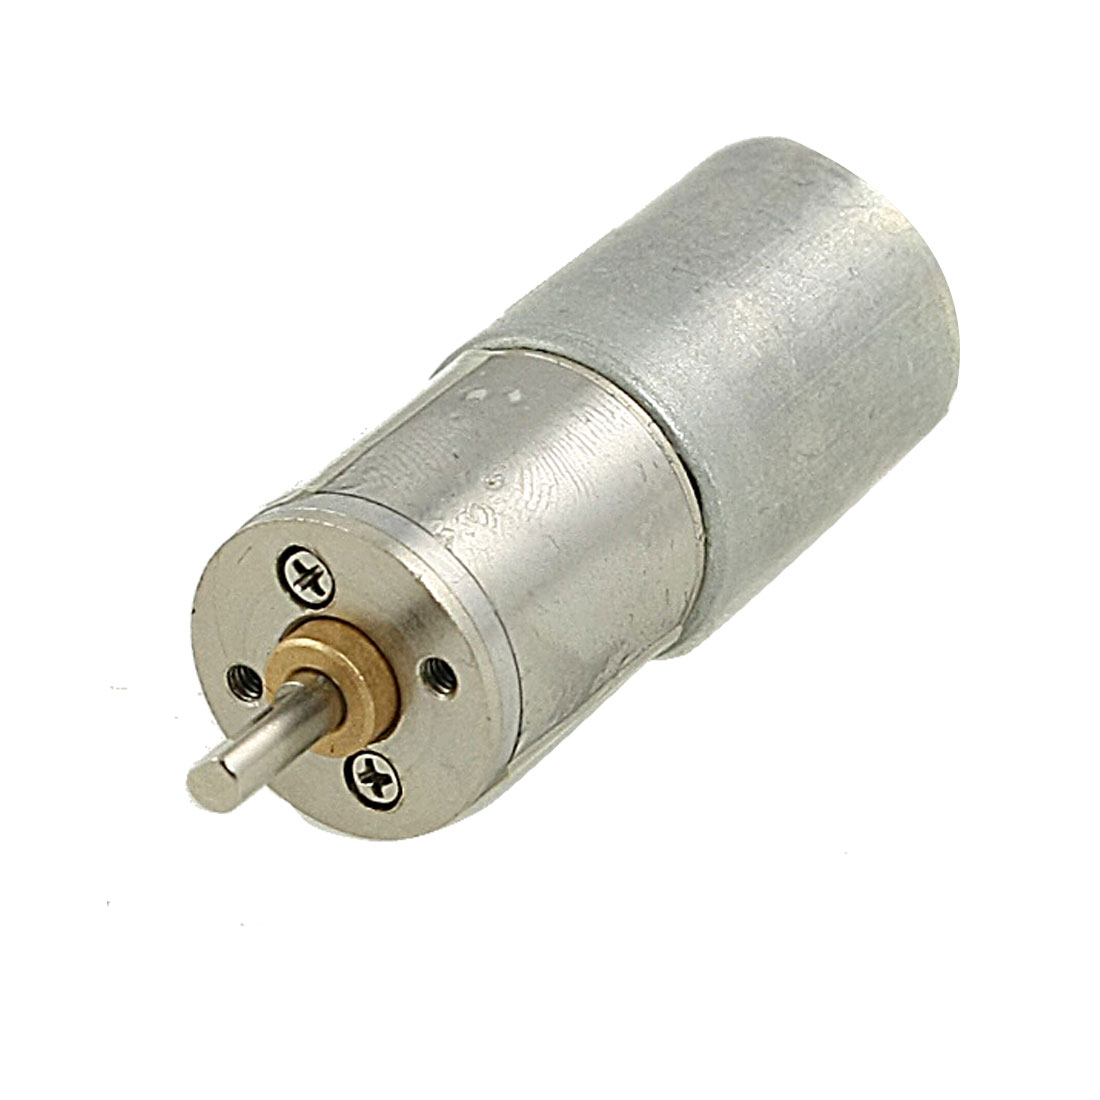 6RPM 6V 0.45A High Torque Mini Electric DC Geared Motor